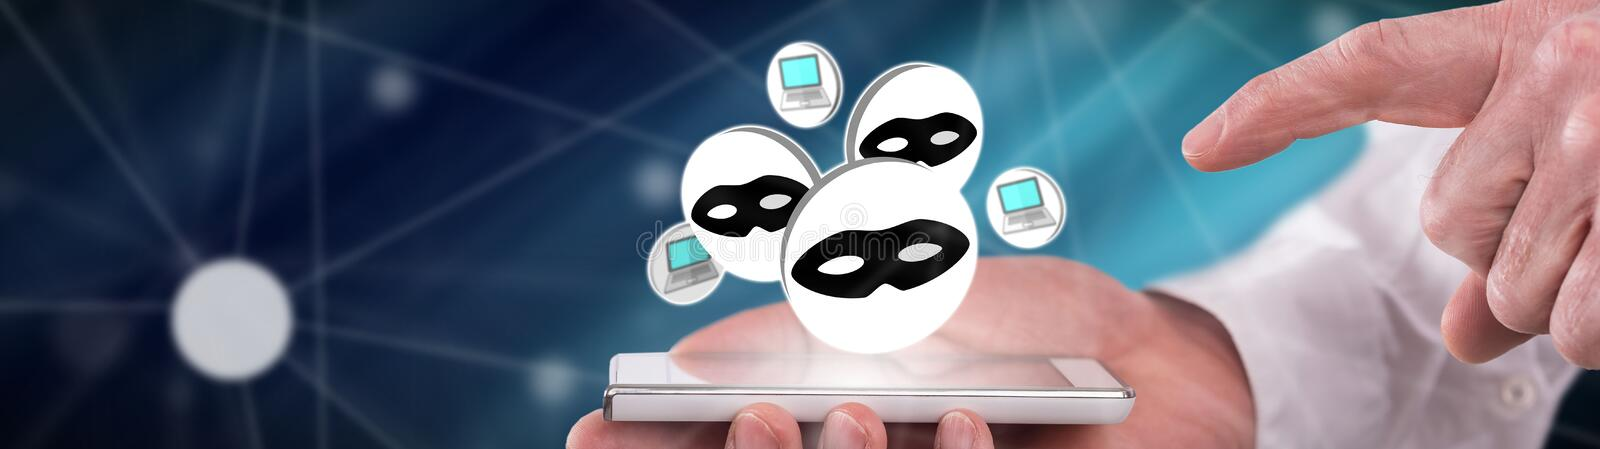 Concept of cyber attack. Cyber attack concept above a smartphone held by a man stock photos